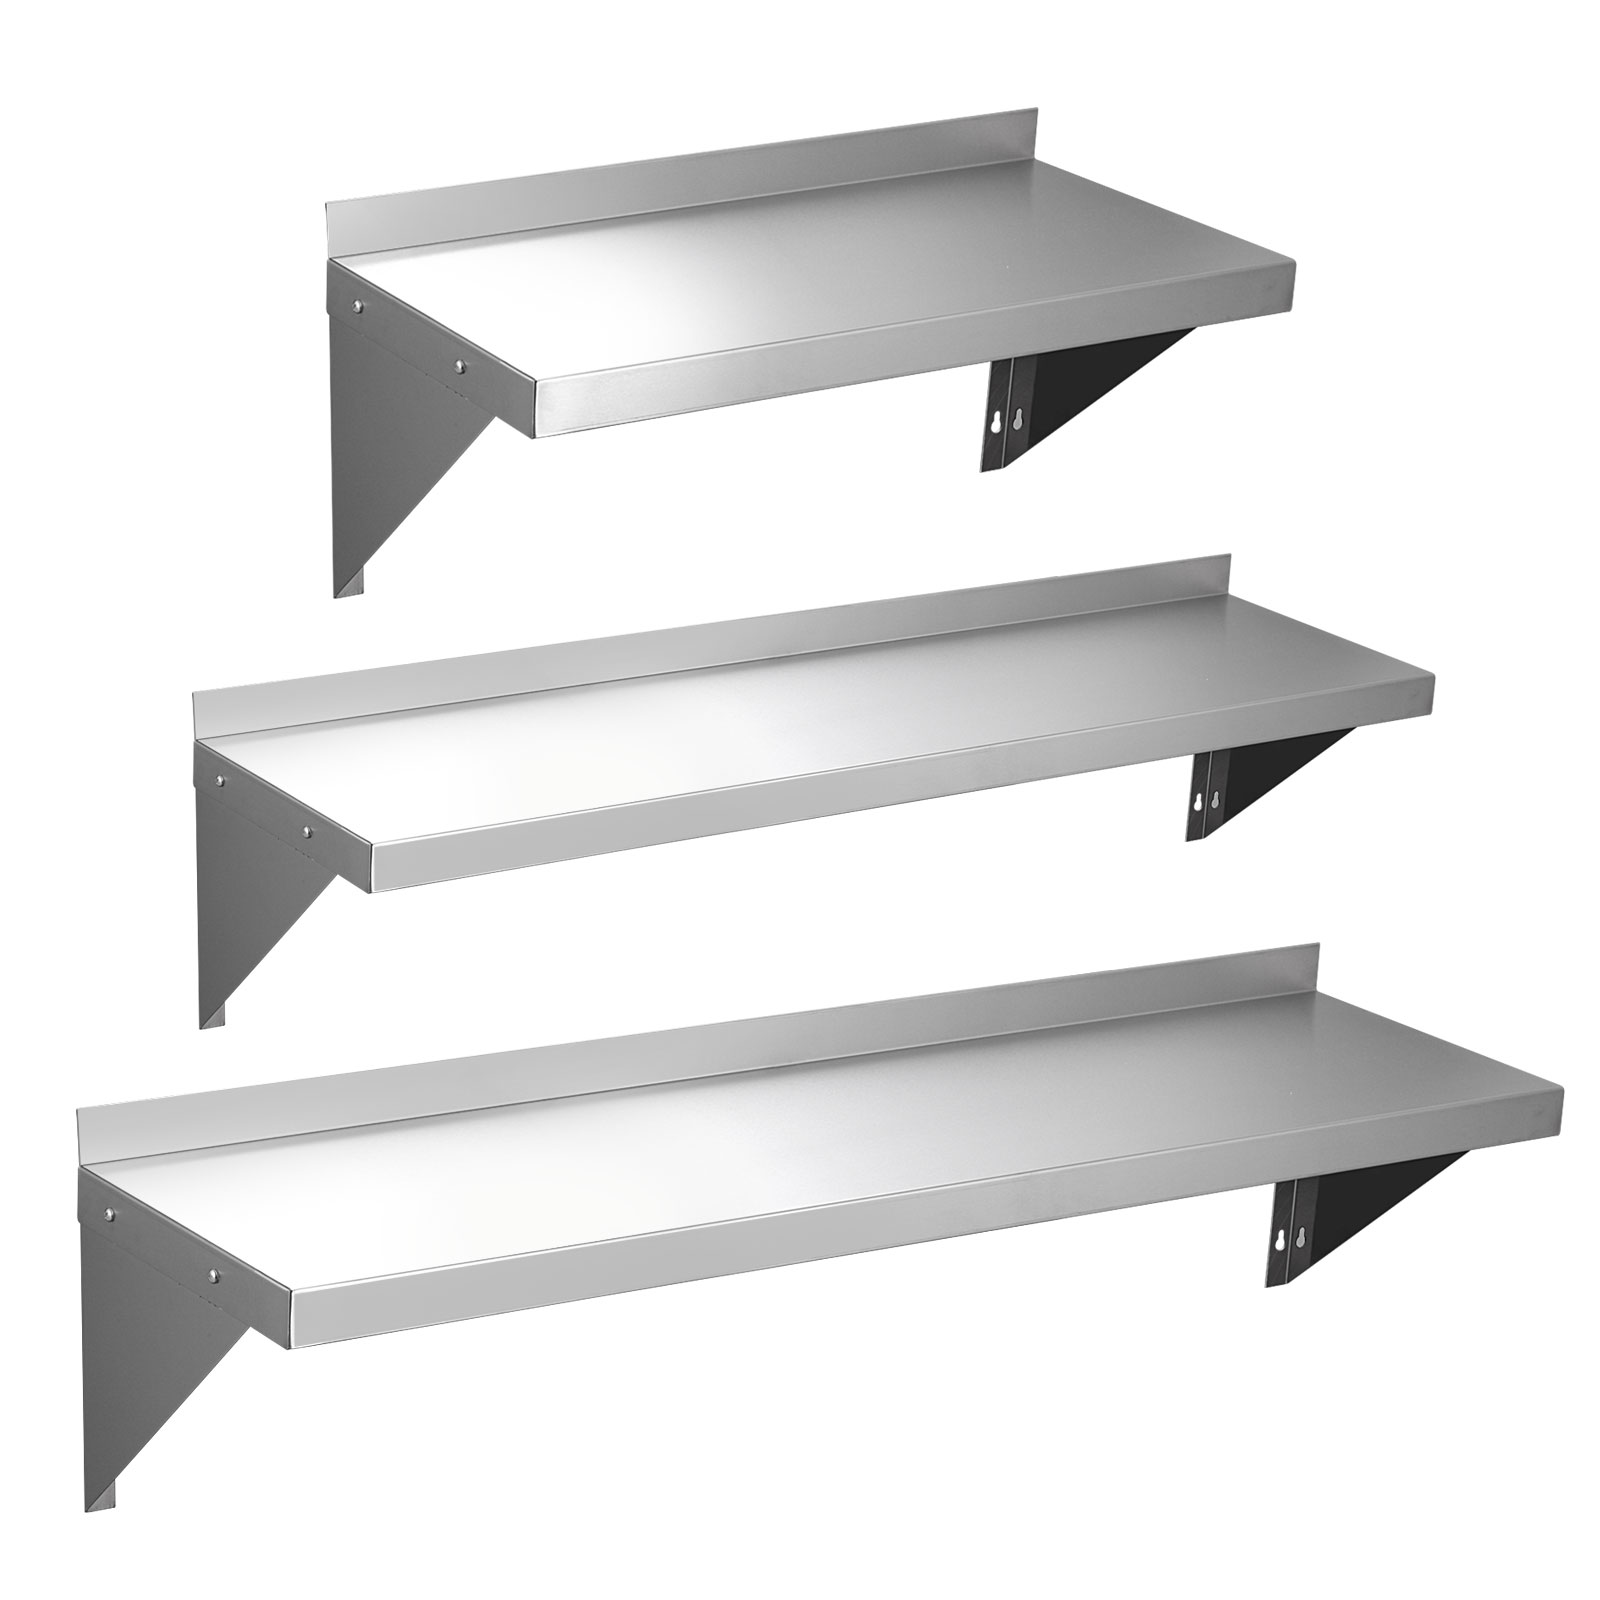 Shelves For Kitchen Wall: 600 900 1200mm Stainless Steel Wall Shelf With Brackets